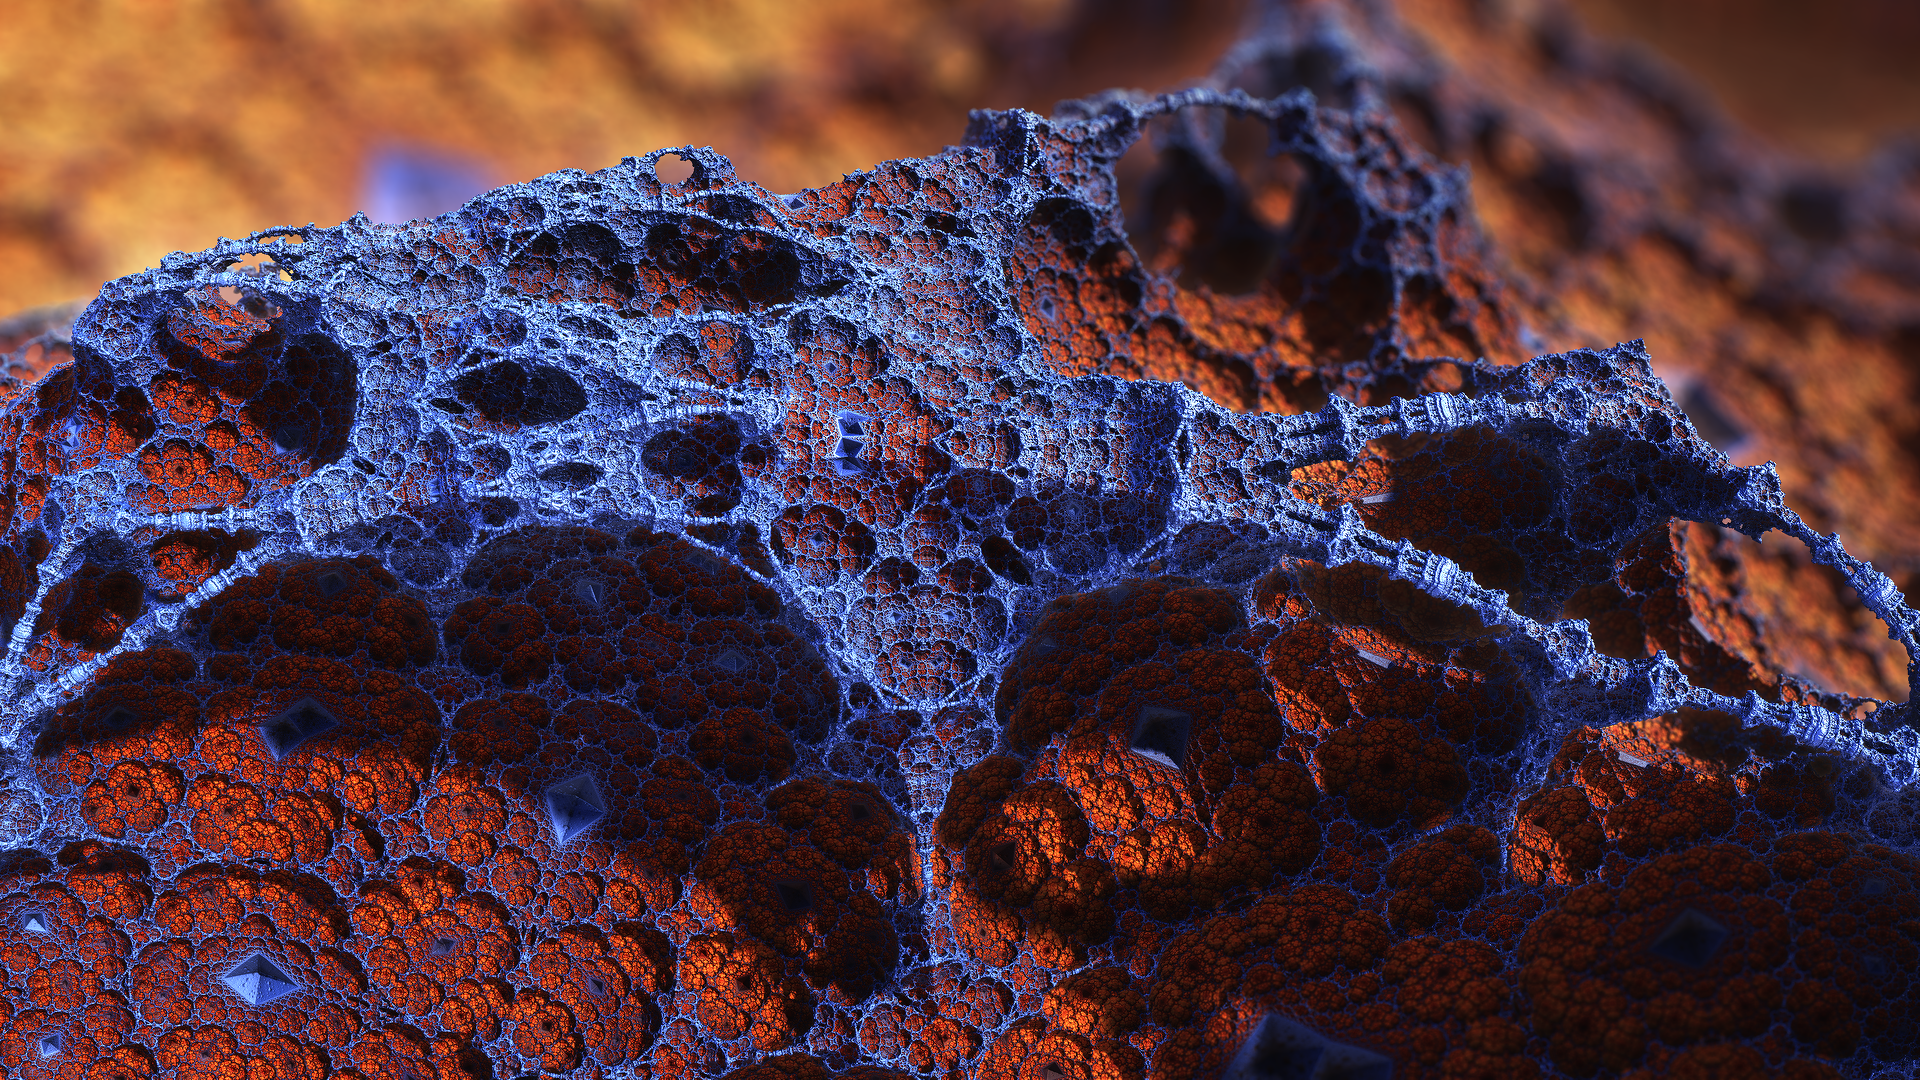 3d Fractal Wallpapers High Definition with HD Wallpaper Resolution 1920x1080 px 5.10 MB | Design ...